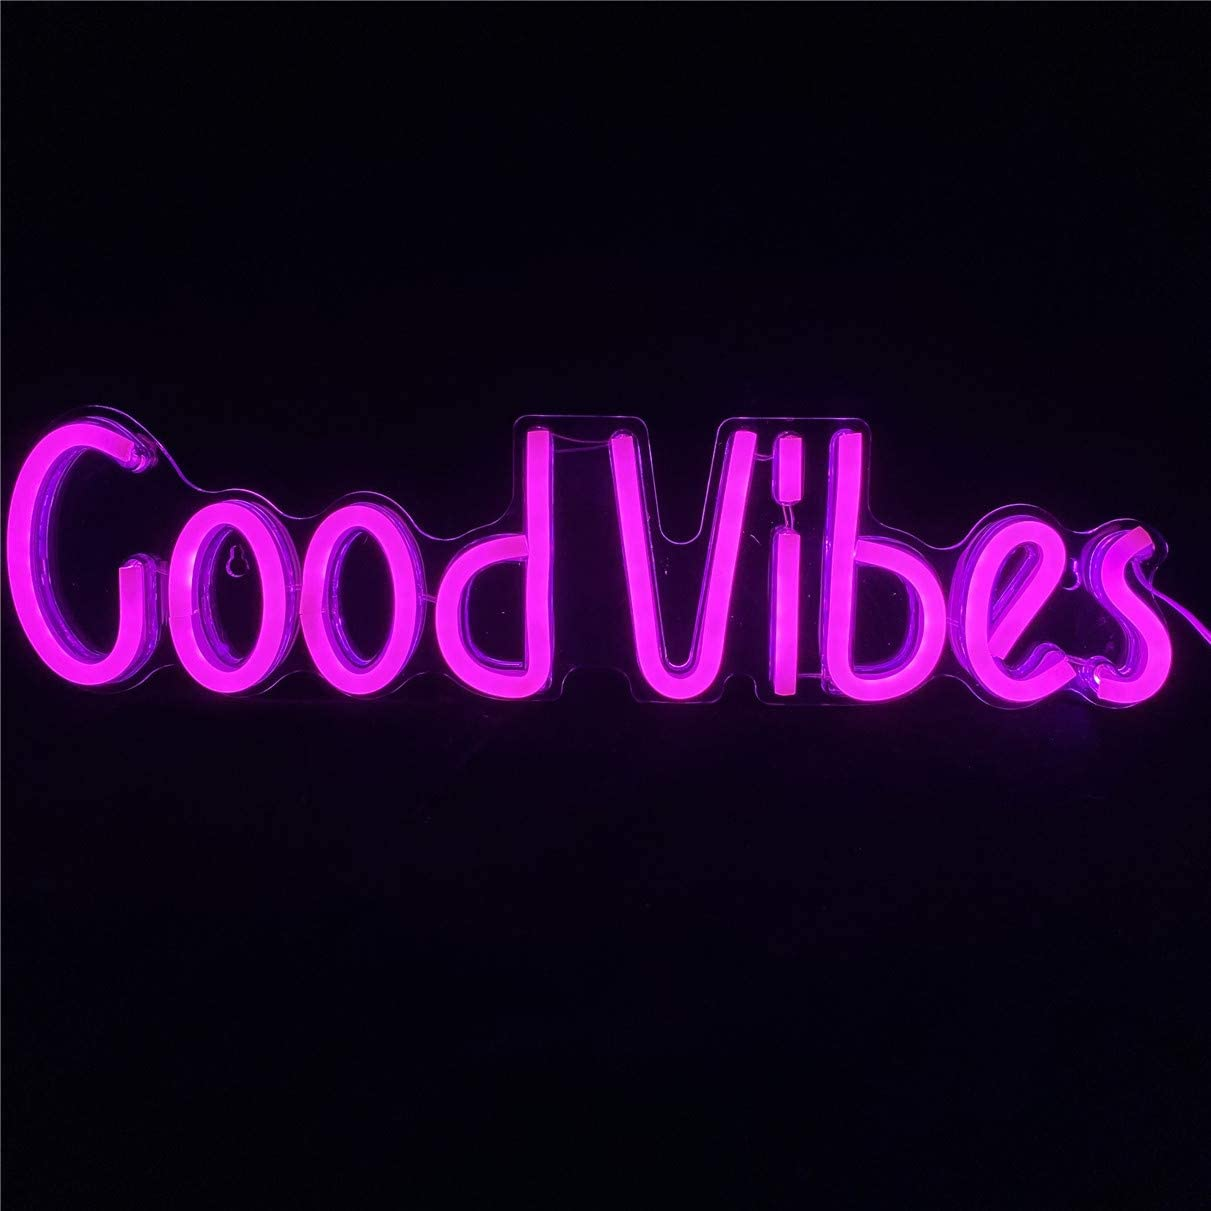 LED Good Vibes Neon Signs Good Vibes Words Neon Lights for Room Wall Decor Light/Lamp Bedroom Beer Bar Pub Hotel Party Restaurant Recreational Game Room Wall Art Decoration(19.6''~4.9'') -Pink